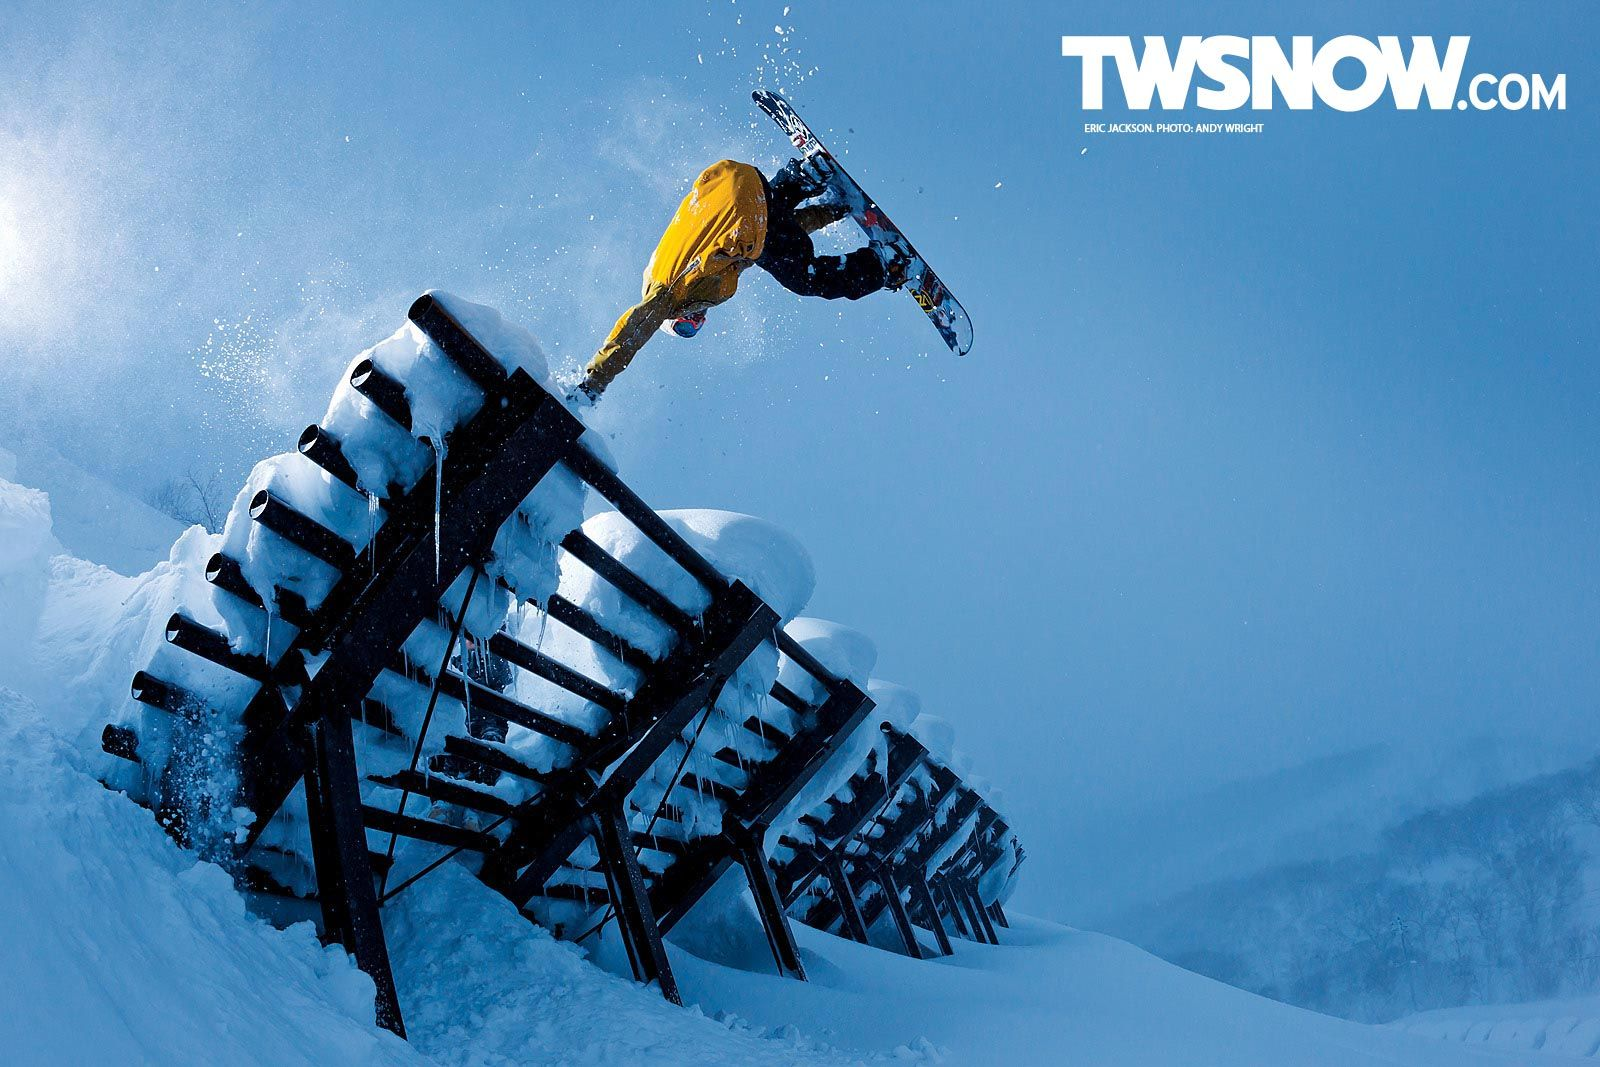 wallpaper wednesday: different times to board | snowboards